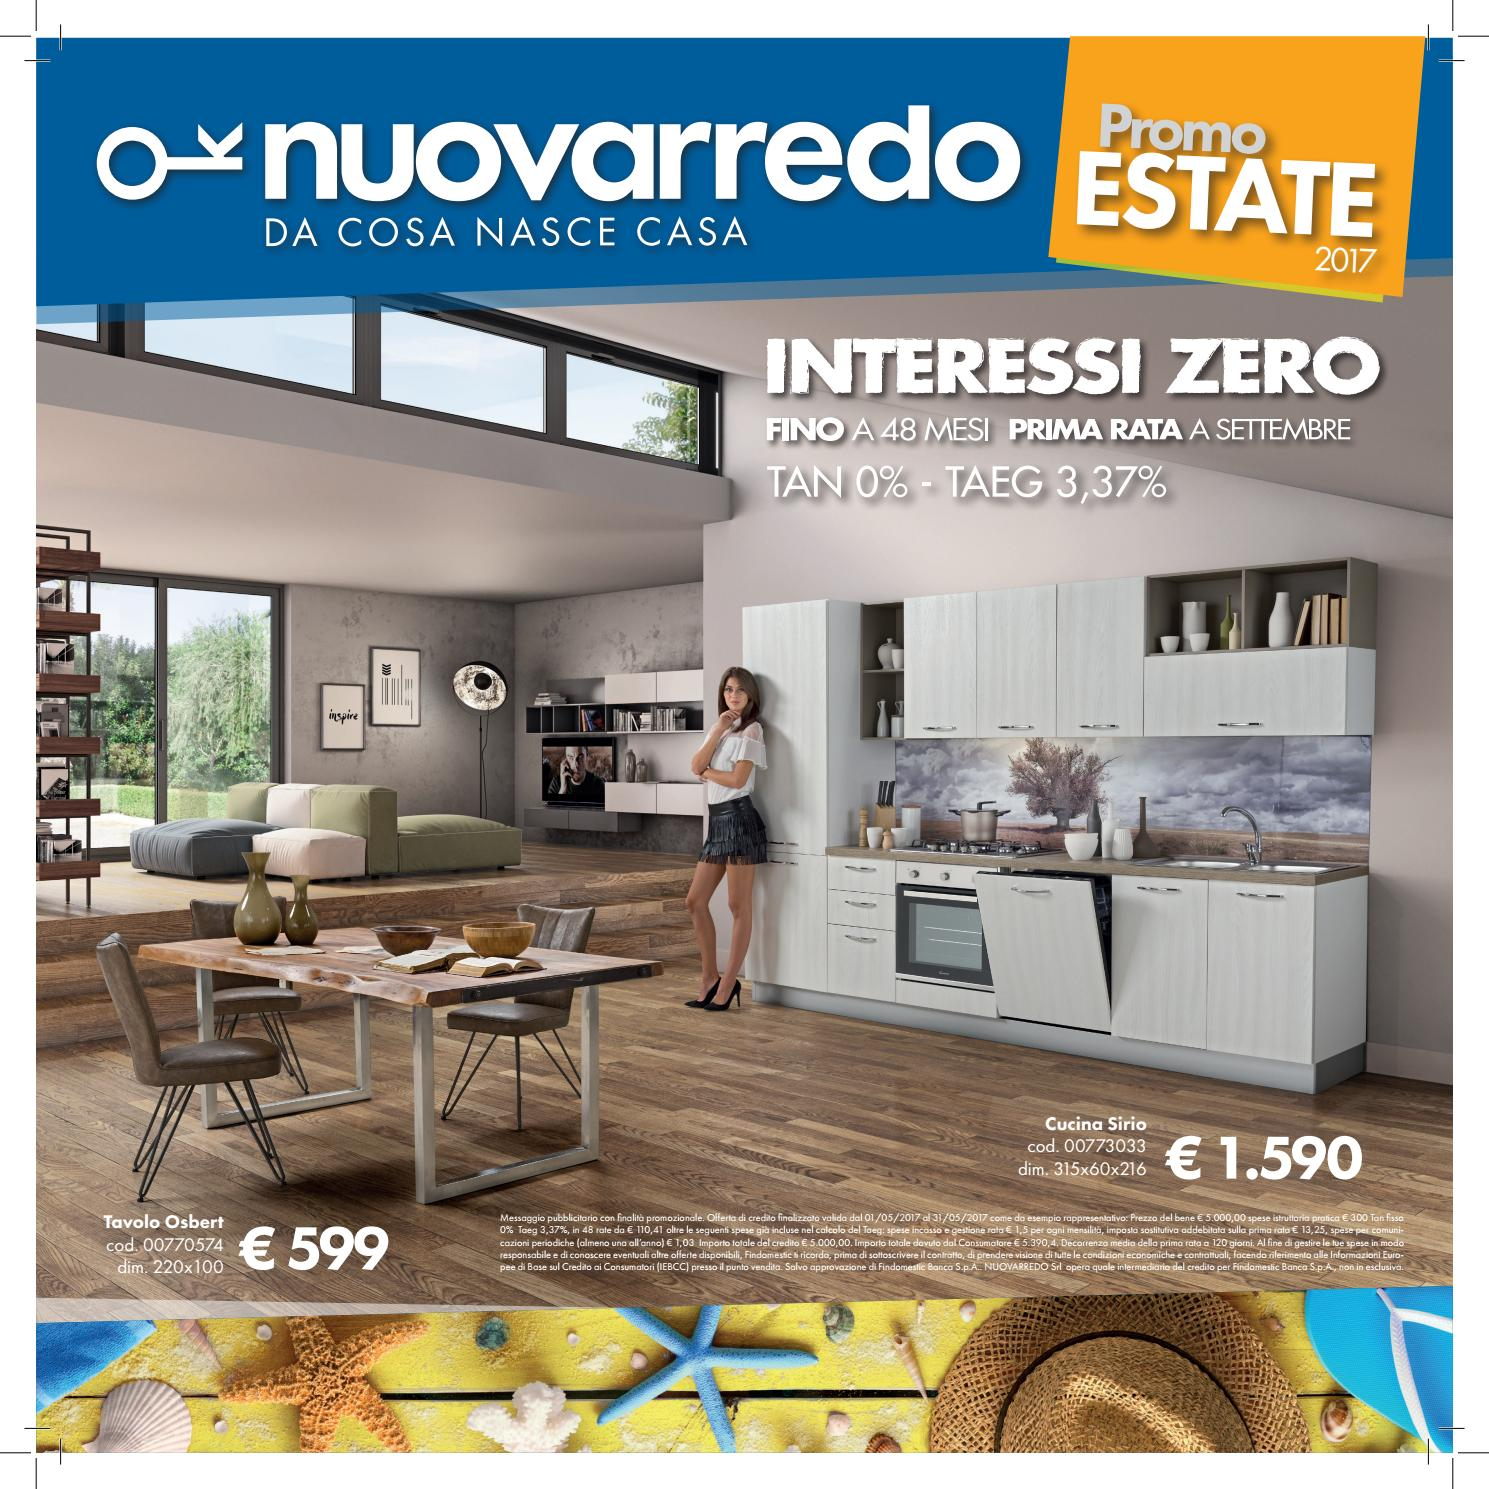 Tabloid Nuovarredo Promo Estate2017 By Nuovarredo Issuu